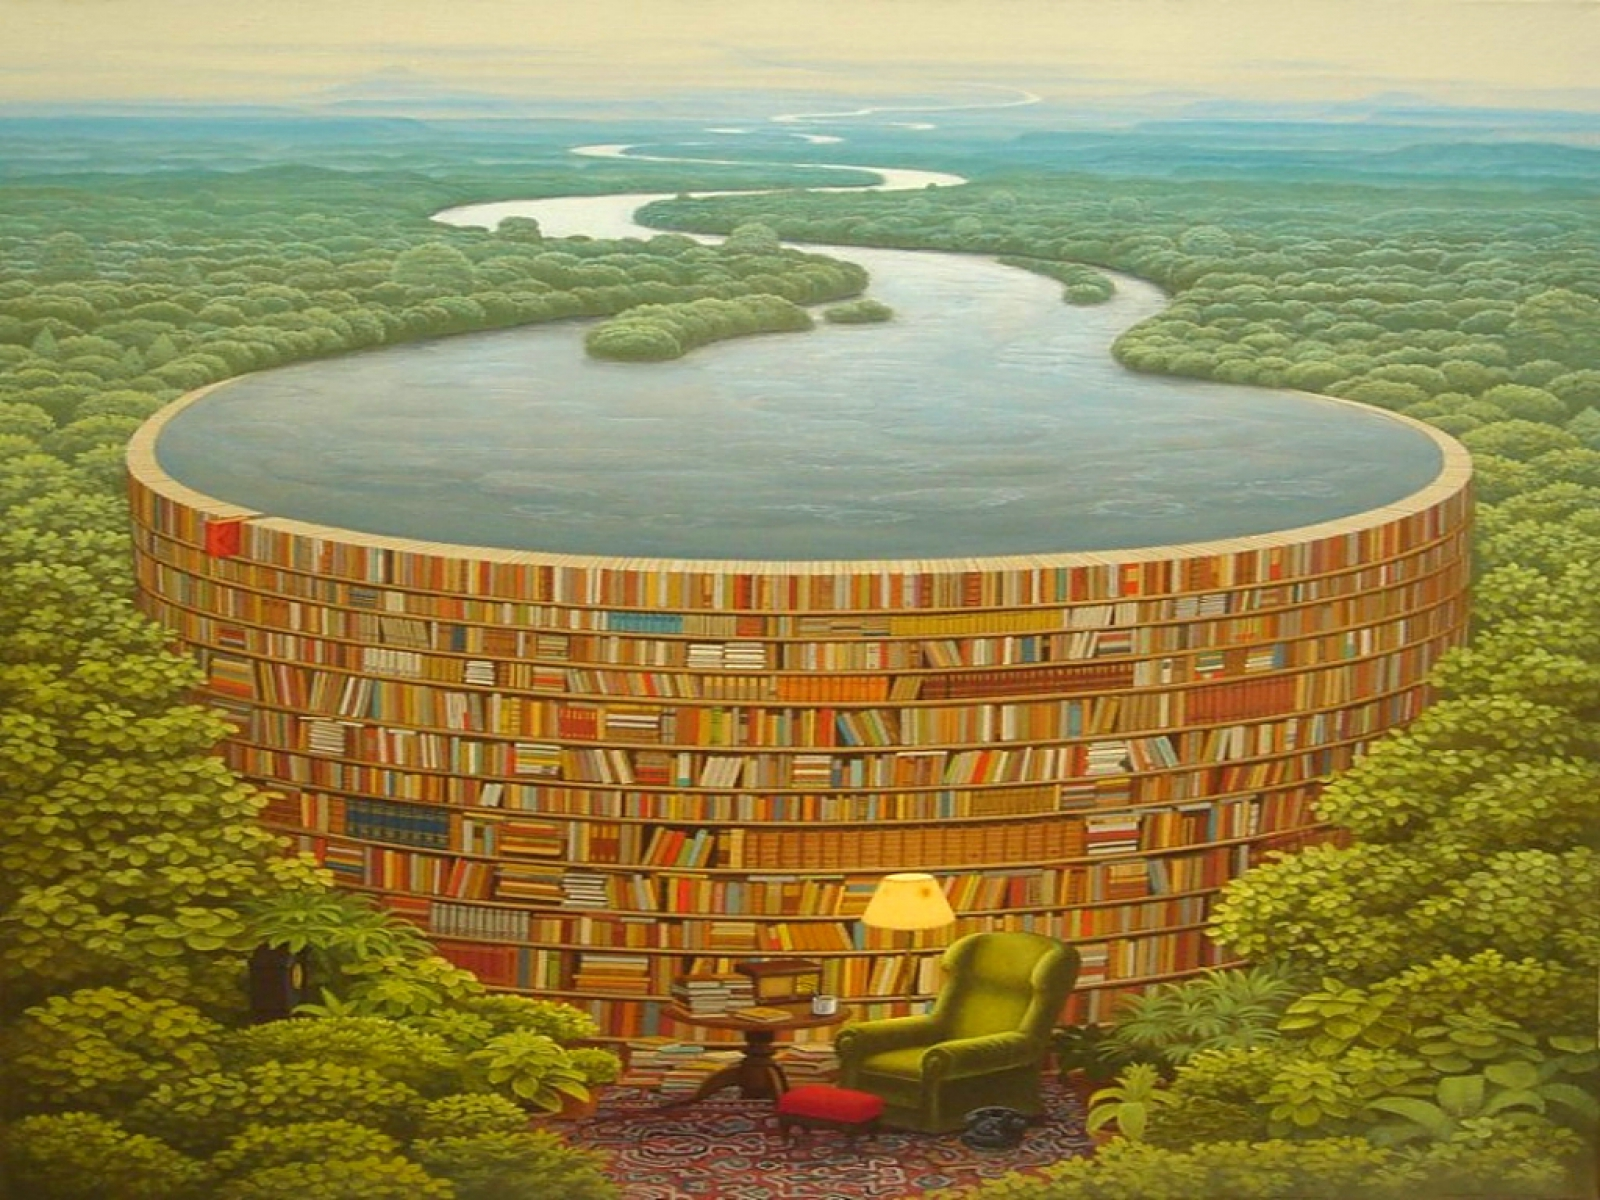 Awesome Surreal Scenery Books Wallpapers Awesome Surreal Scenery